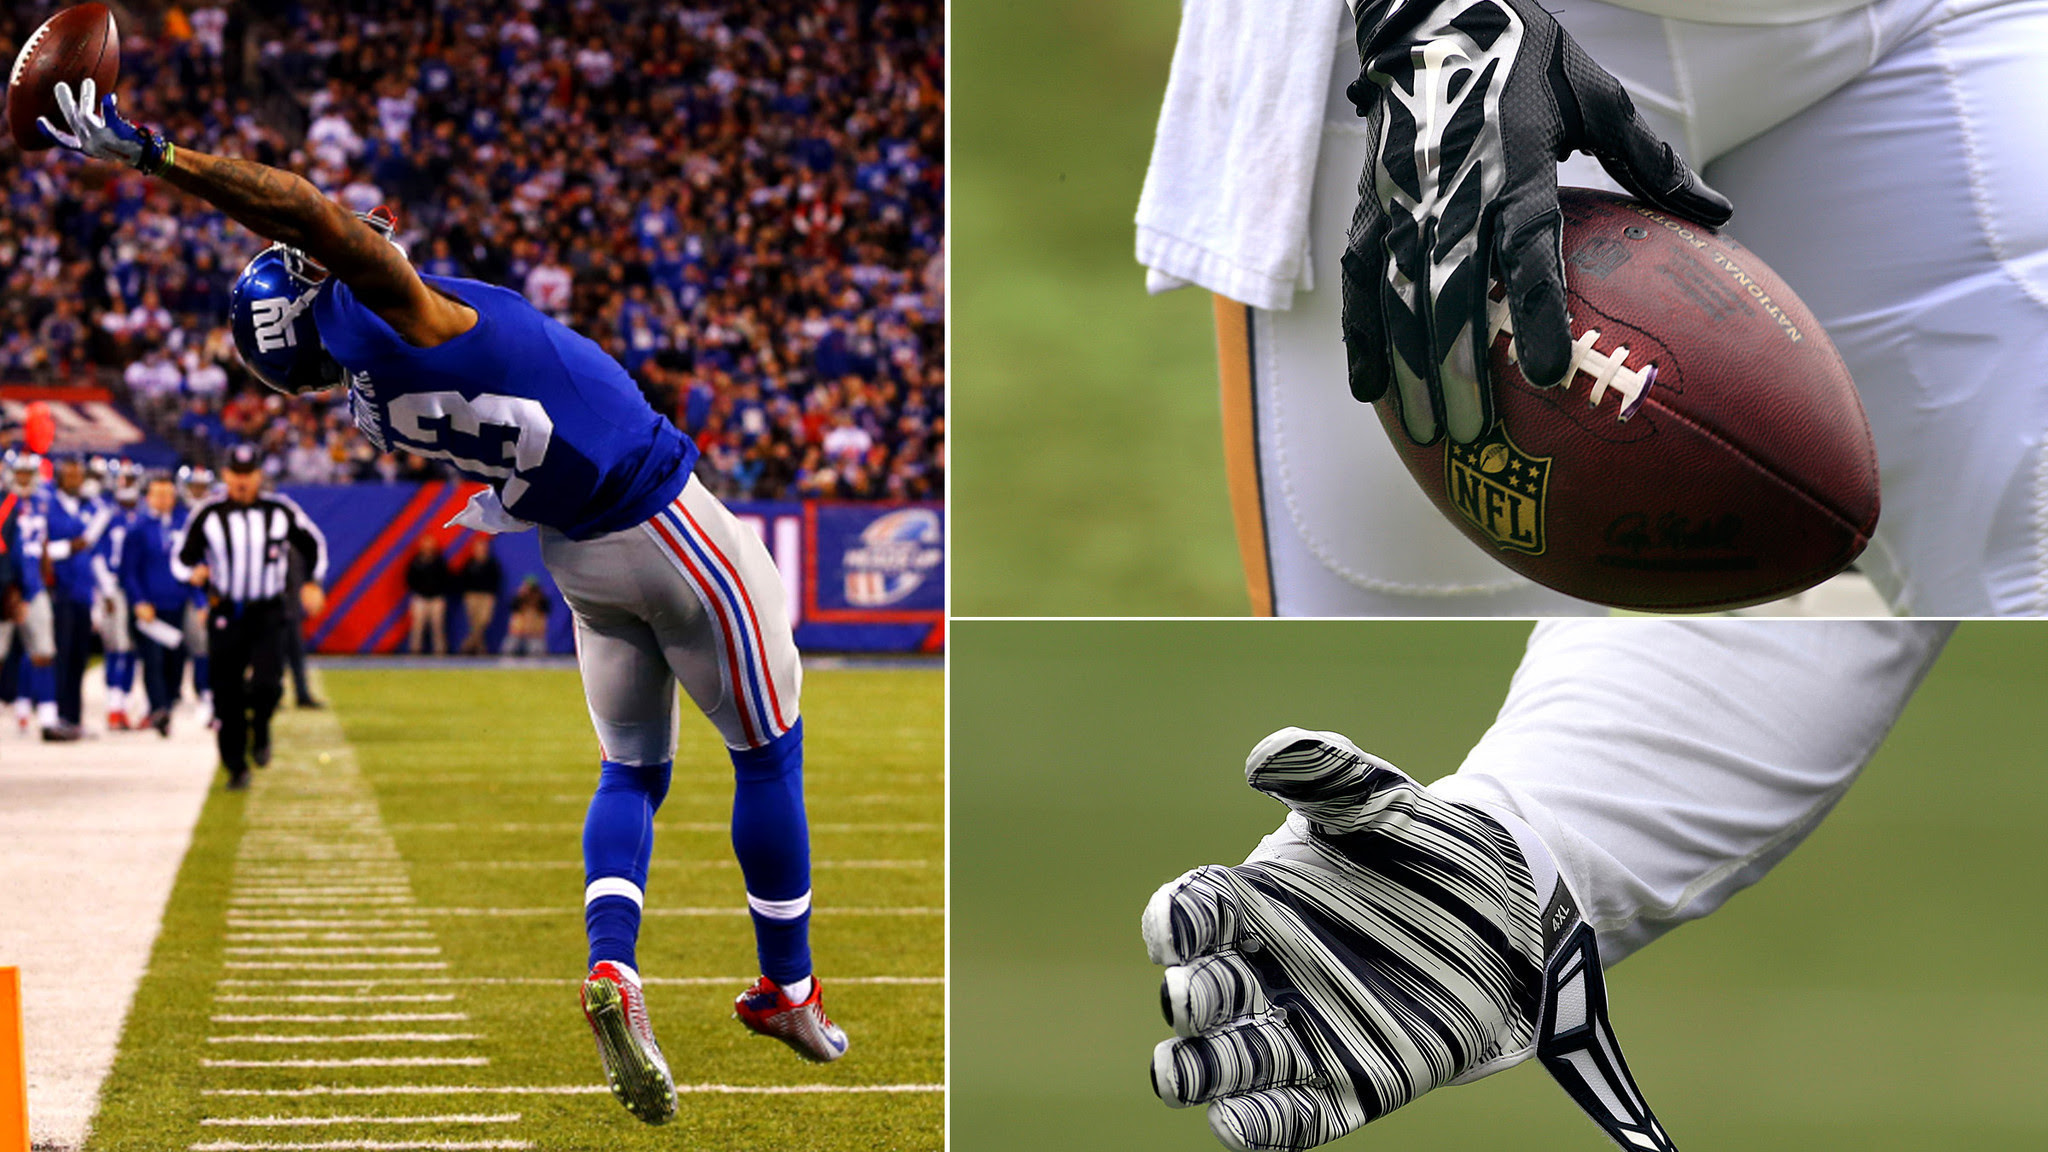 Gloves in NFL have gained popularity but use is largely unregulated  LA Times